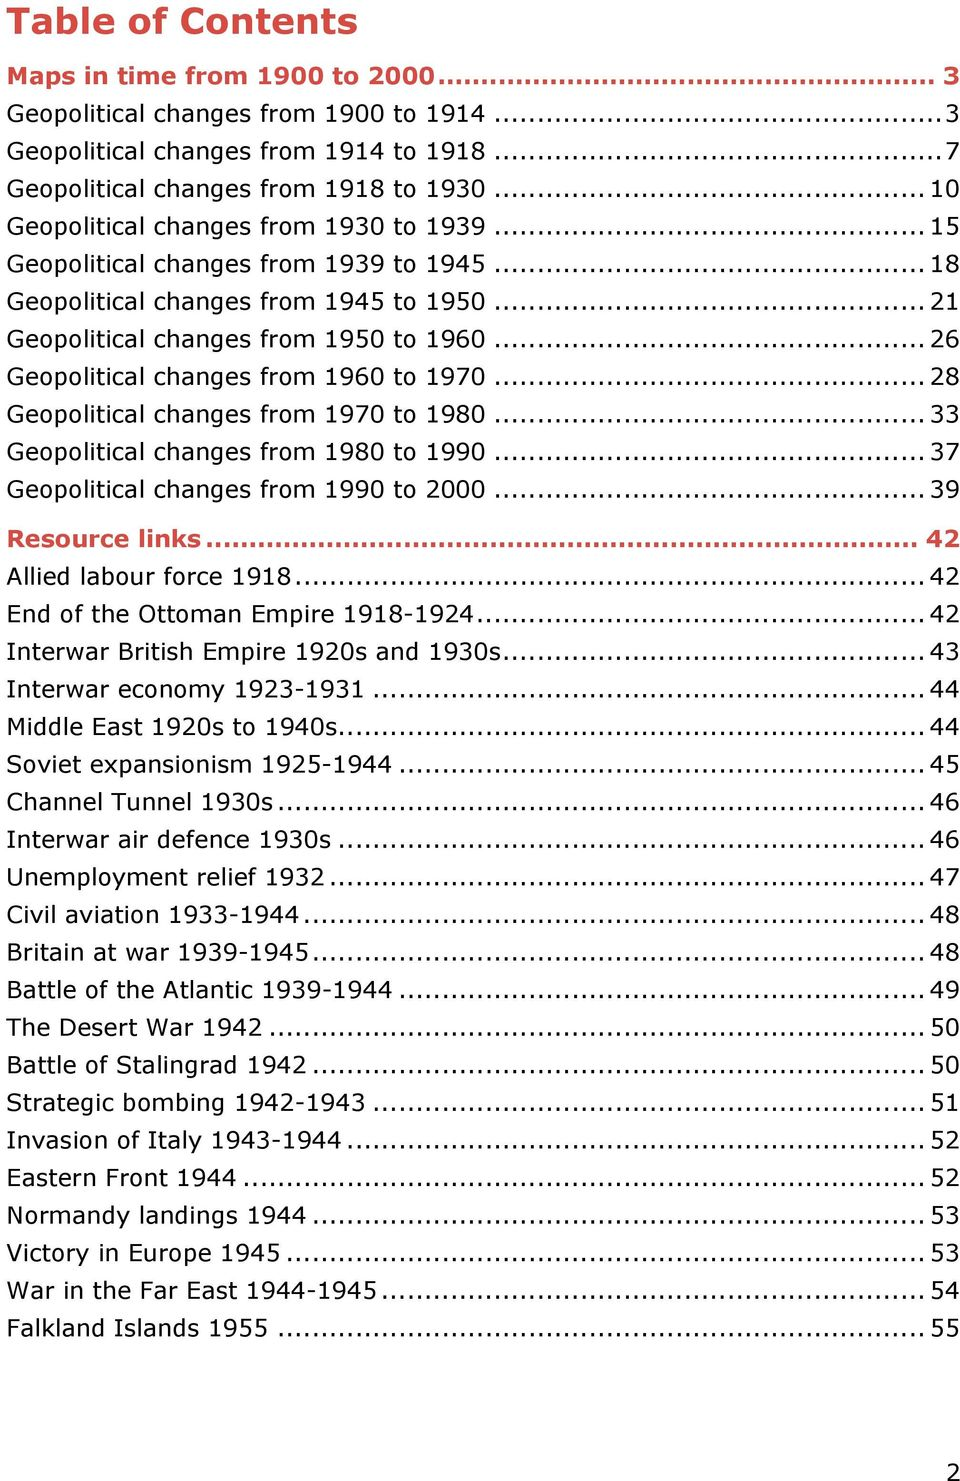 .. 26 Geopolitical changes from 1960 to 1970... 28 Geopolitical changes from 1970 to 1980... 33 Geopolitical changes from 1980 to 1990... 37 Geopolitical changes from 1990 to 2000... 39 Resource links.